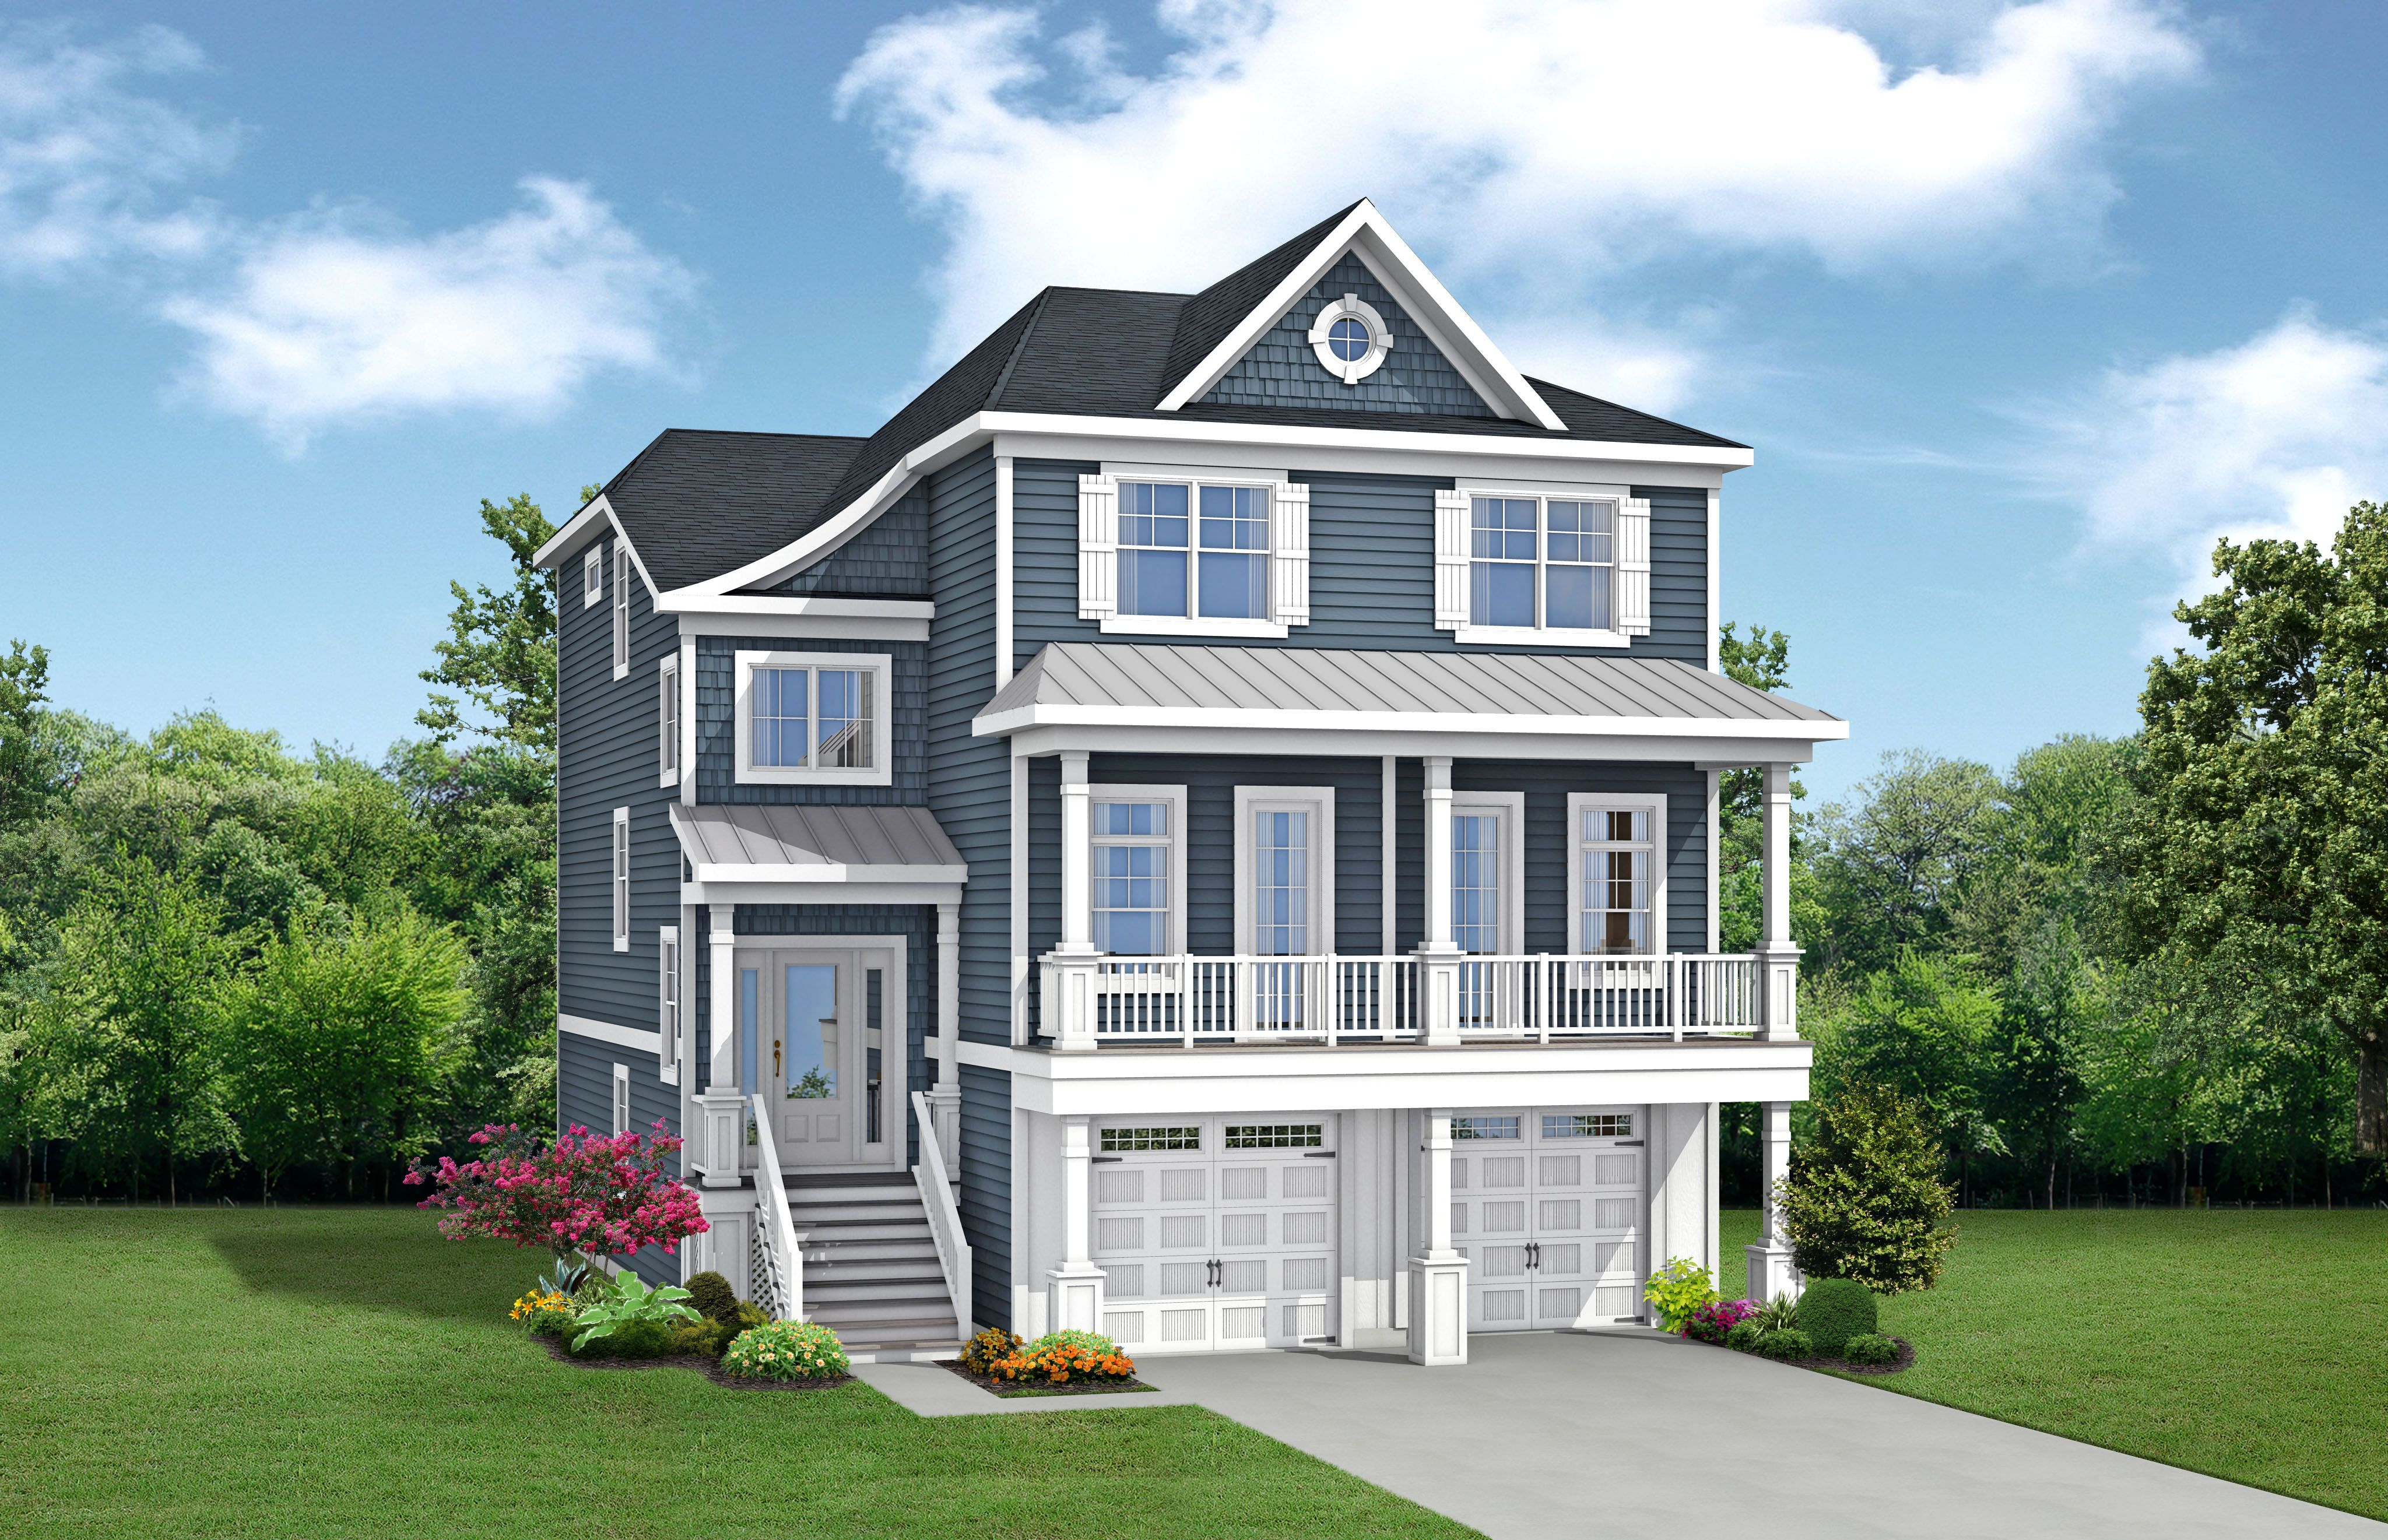 Single Family for Active at Bayside - The Antigua 20811 Harbor Cove Selbyville, Delaware 19975 United States